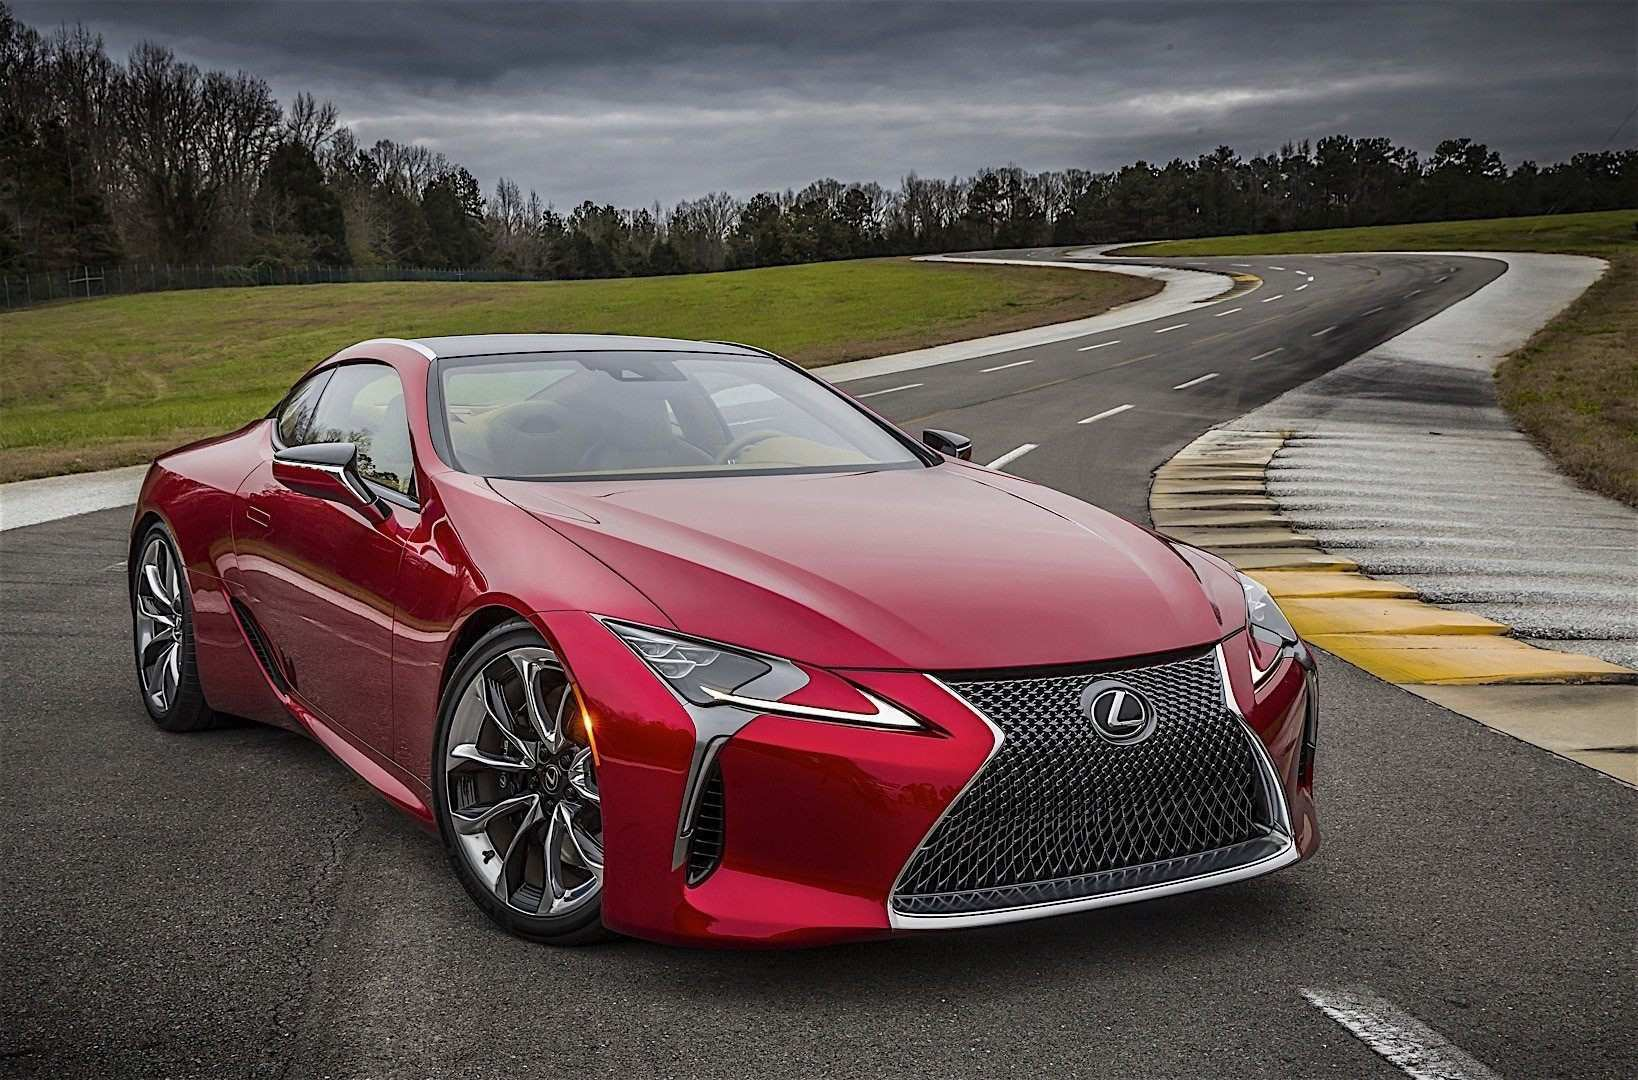 14 New 2020 Lexus Lf Lc Performance with 2020 Lexus Lf Lc